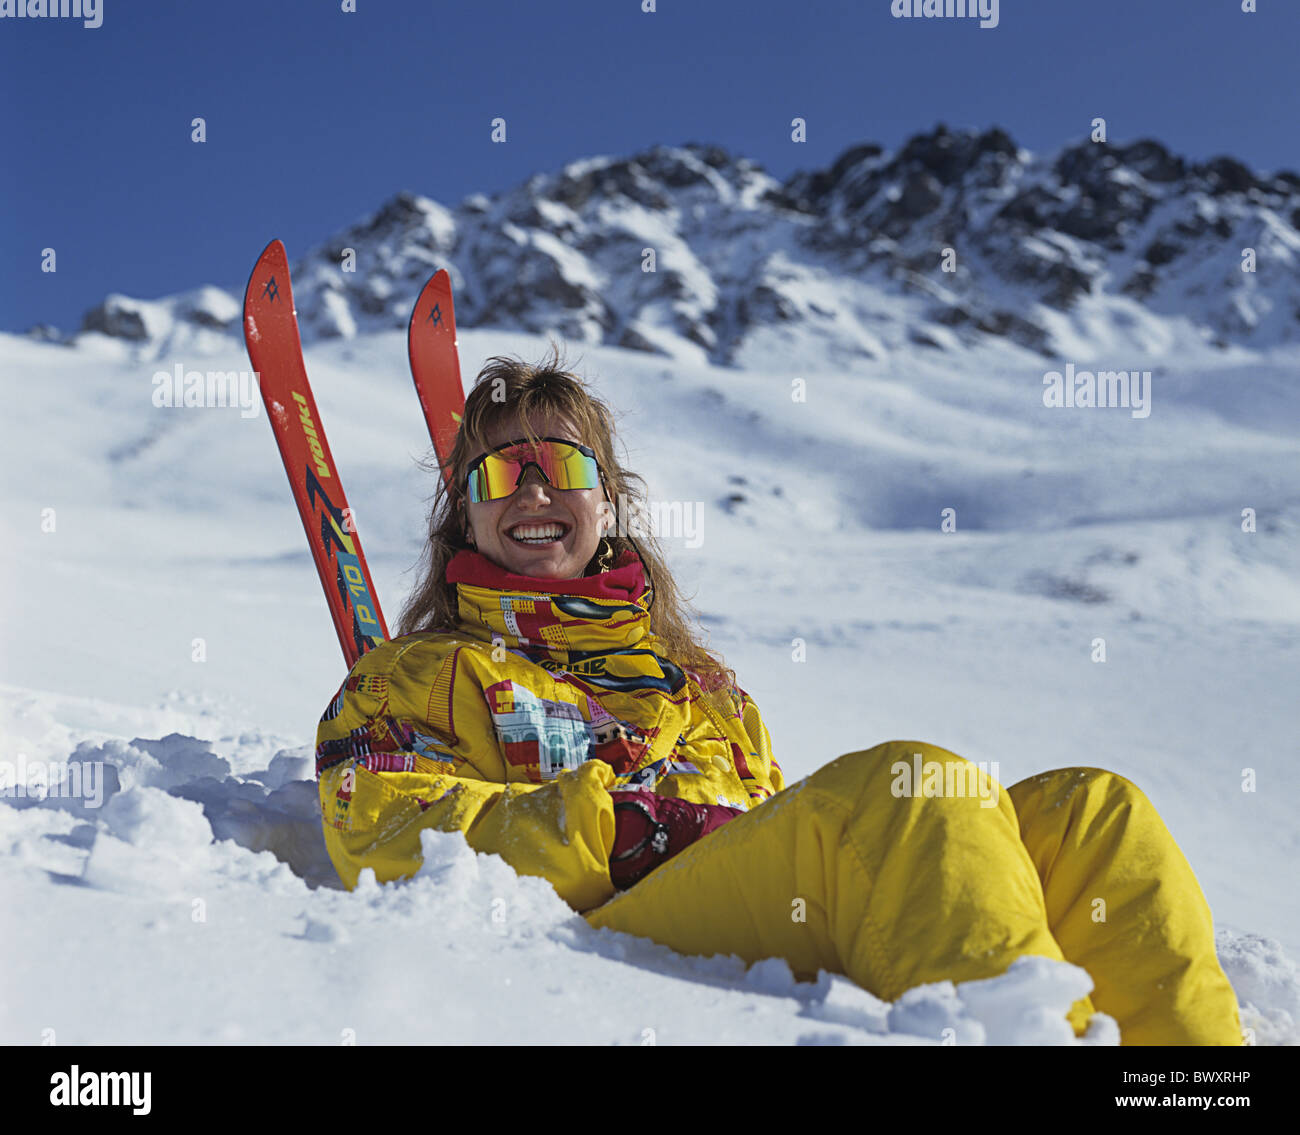 woman laugh lie slope take it easy relax skier ski skiing winter sports sport sunglasses winter - Stock Image